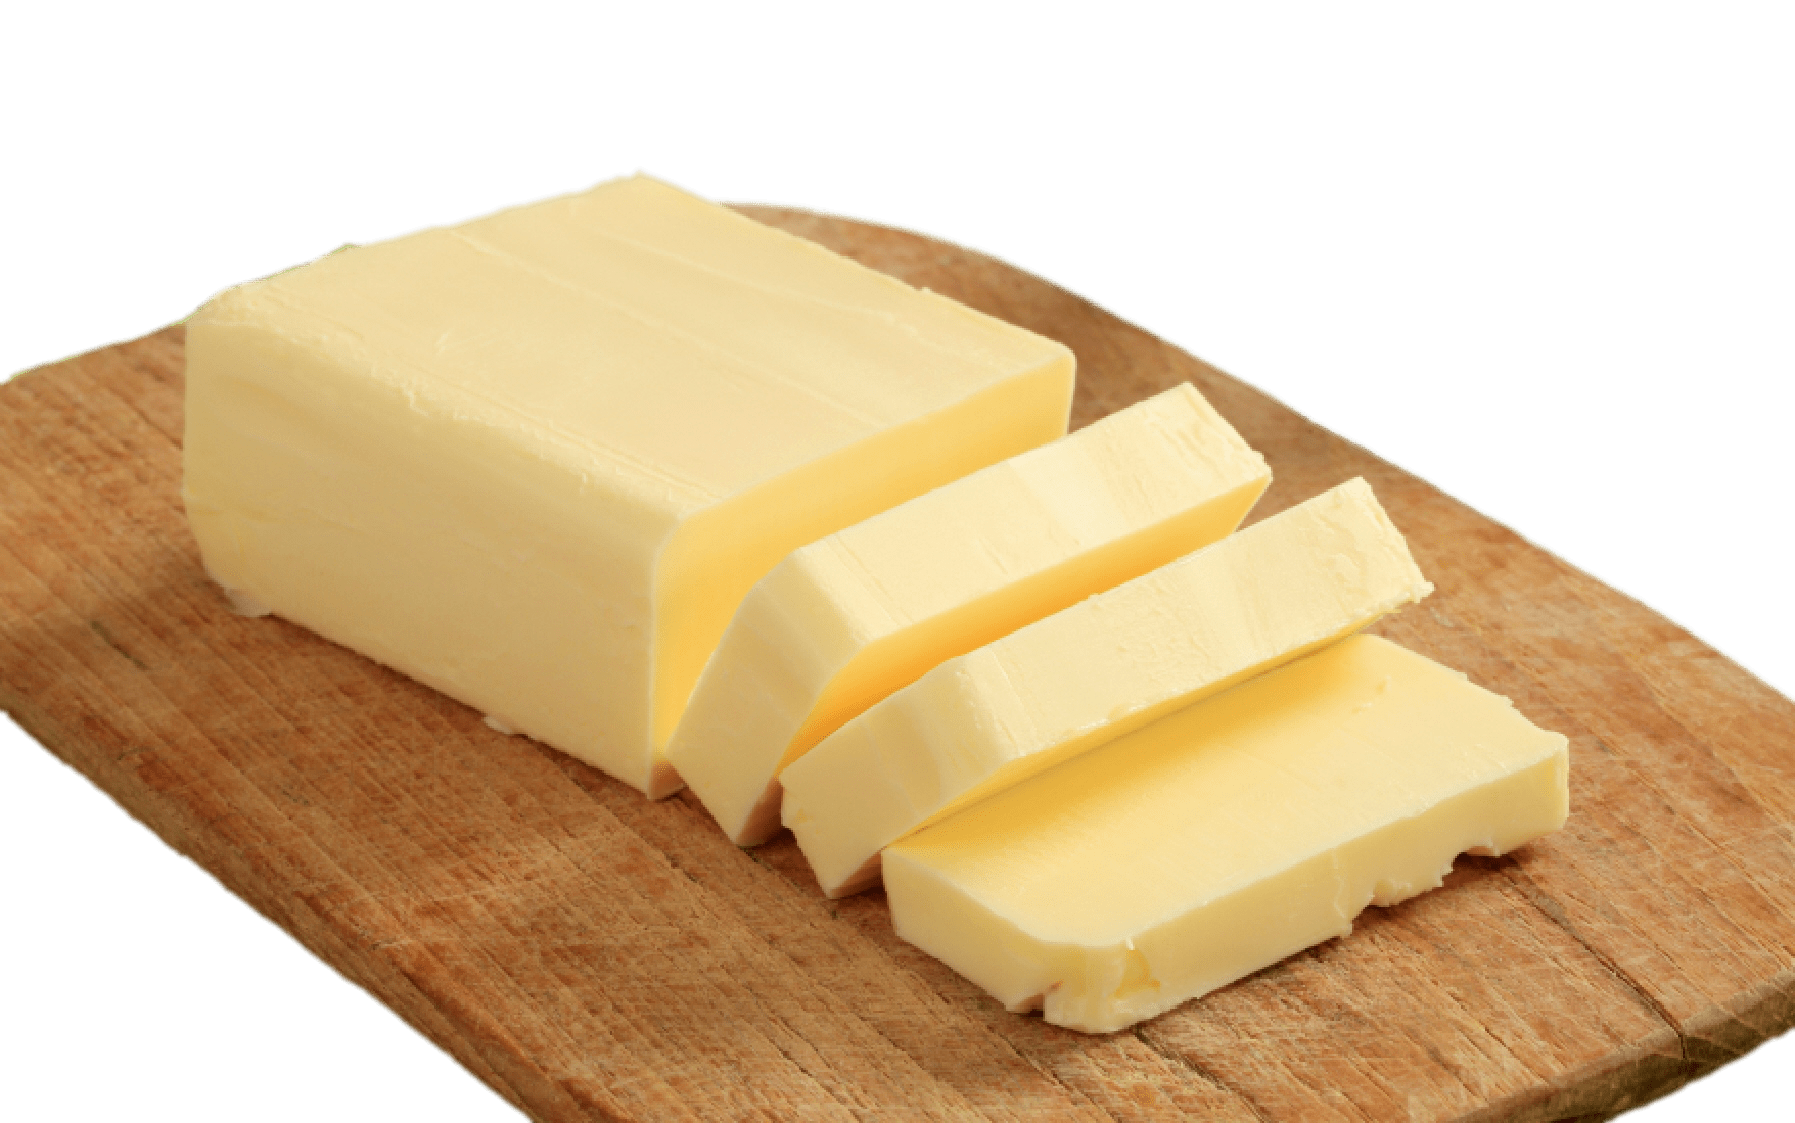 png transparent library Cube transparent cheese. Butter on wooden plank